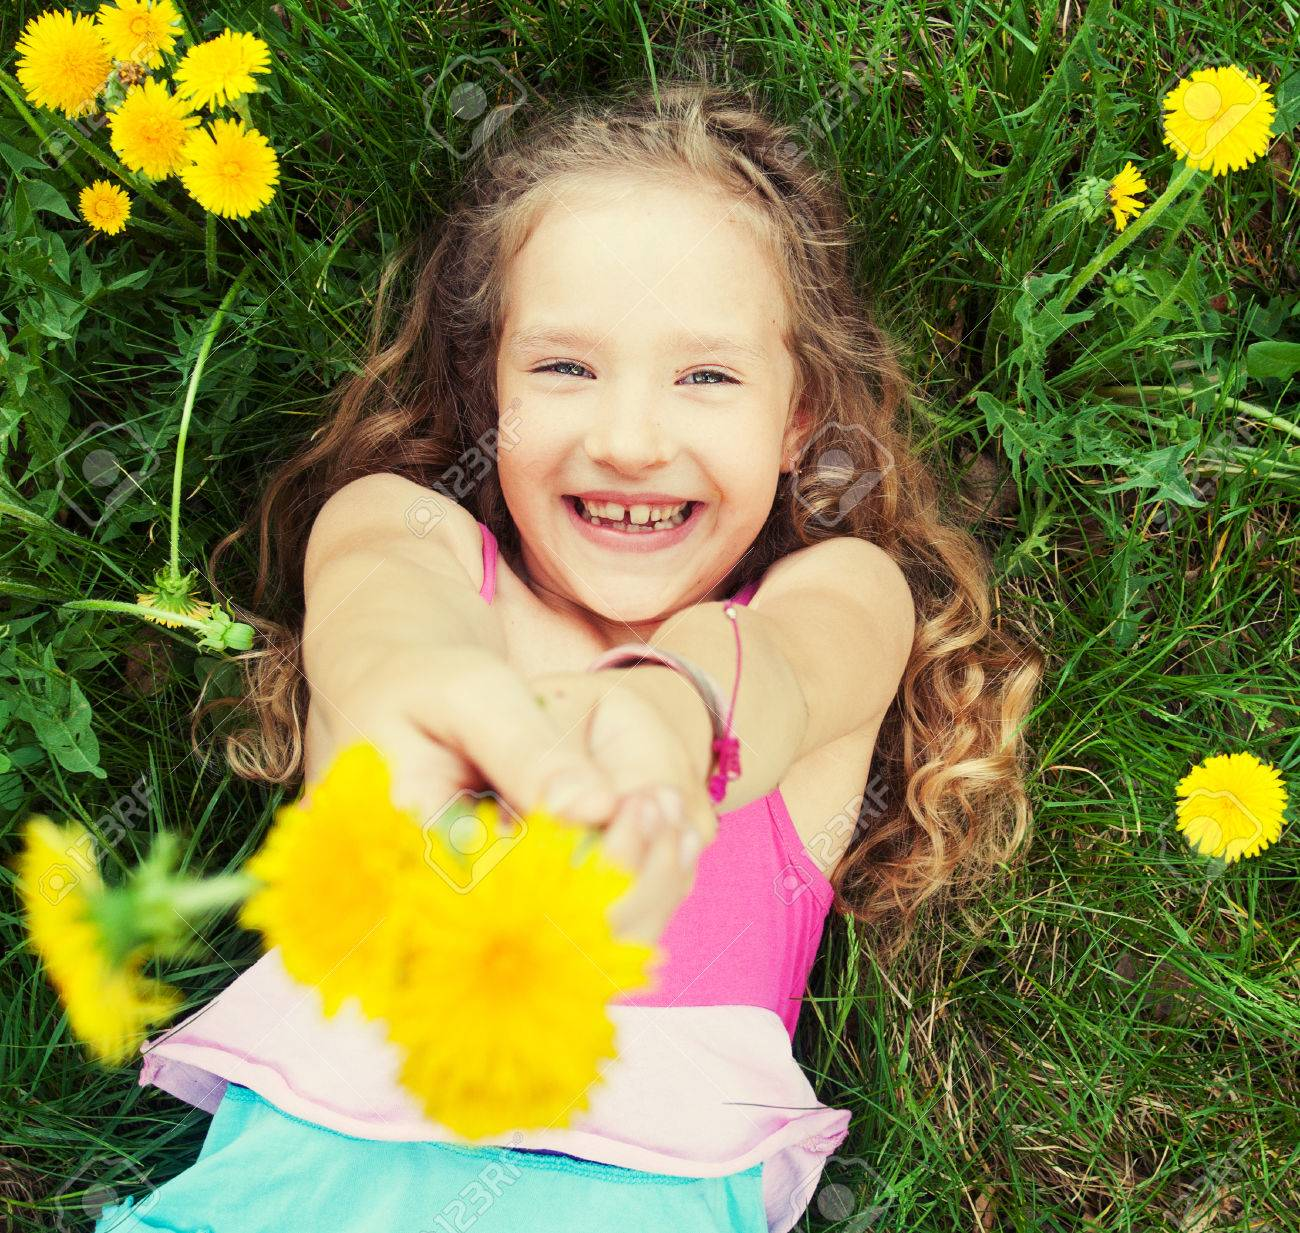 Child at summer. Happy girl outdoors on green grass - 28387861